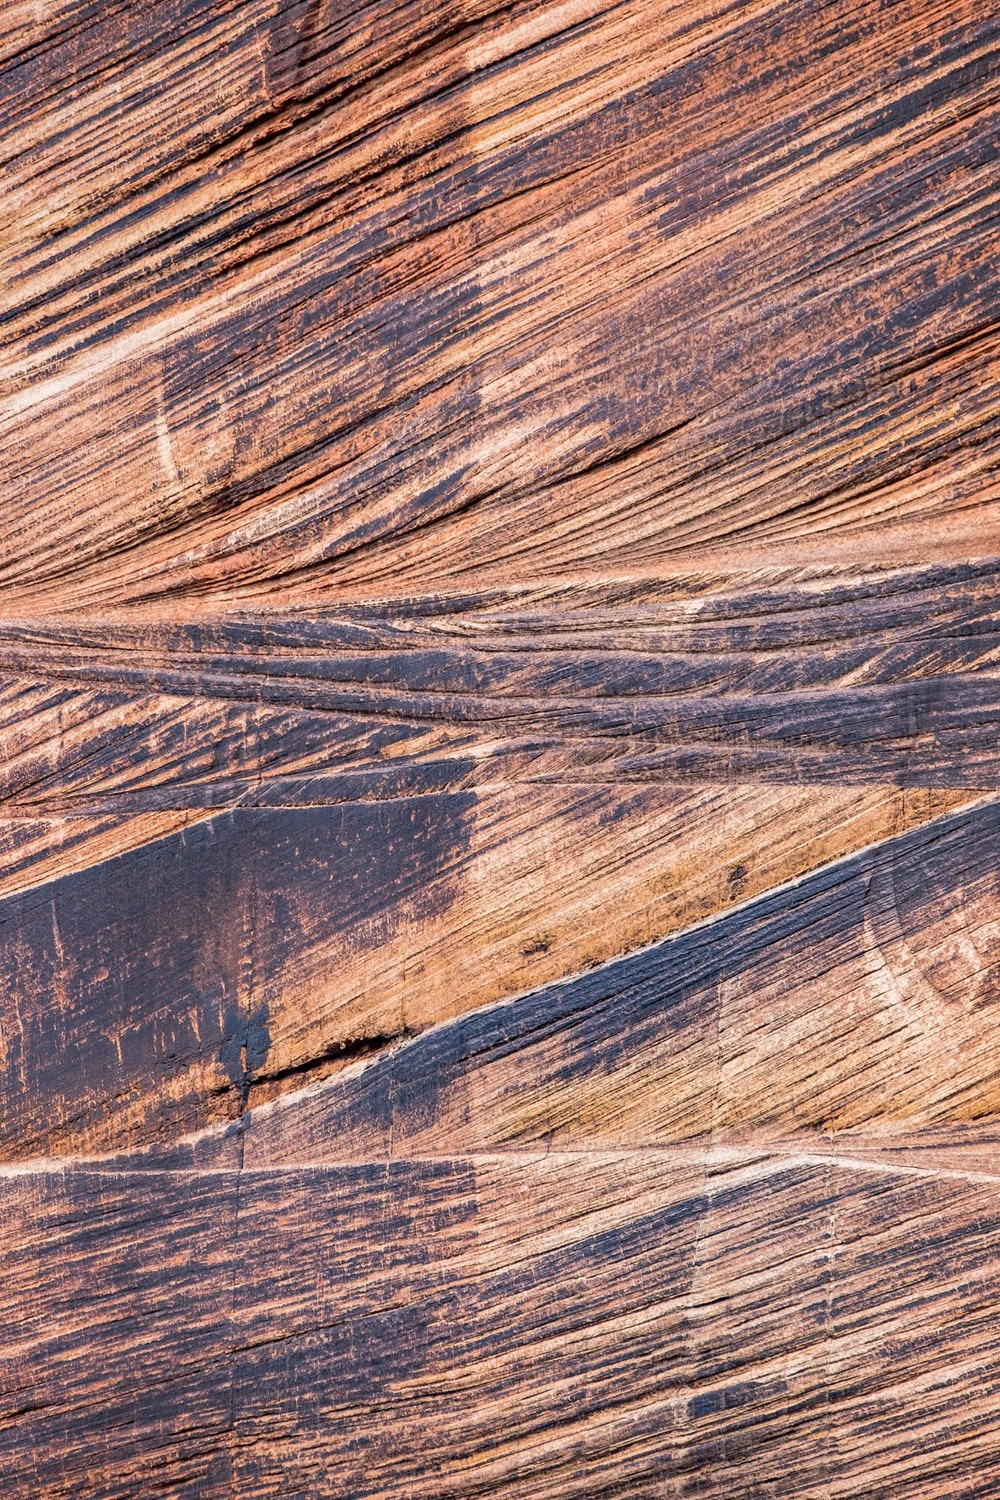 This is a very zoomed in shot of the rock face of the distant wall. I love the texture and lines of the Navajo Sandstone that makes up these amazing walls of the canyon.